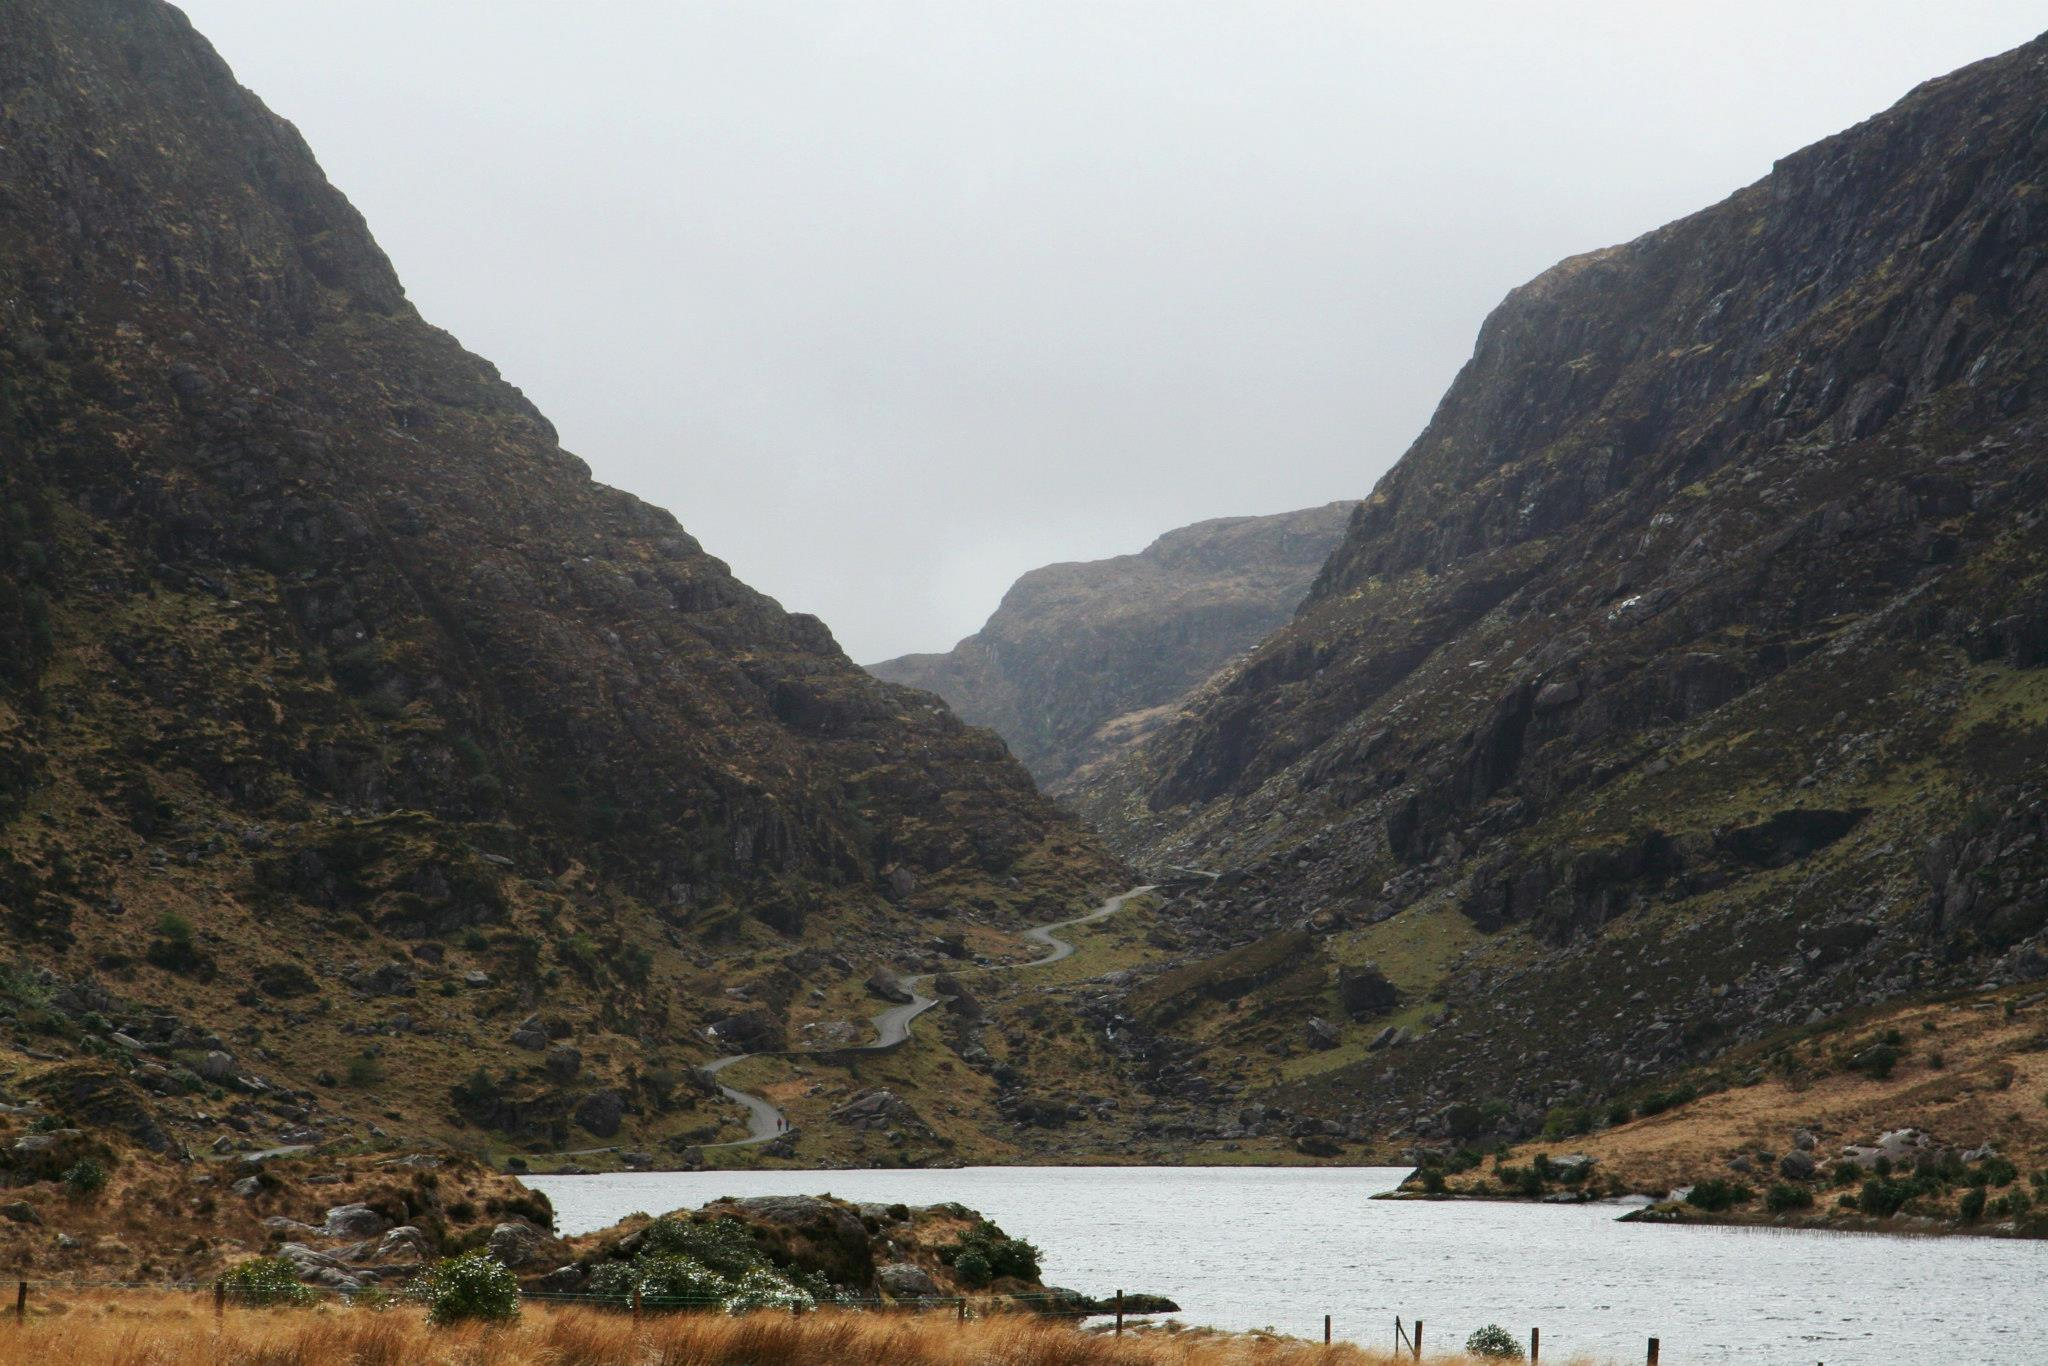 De Gap of Dunloe, aan de rand van Killarney national park